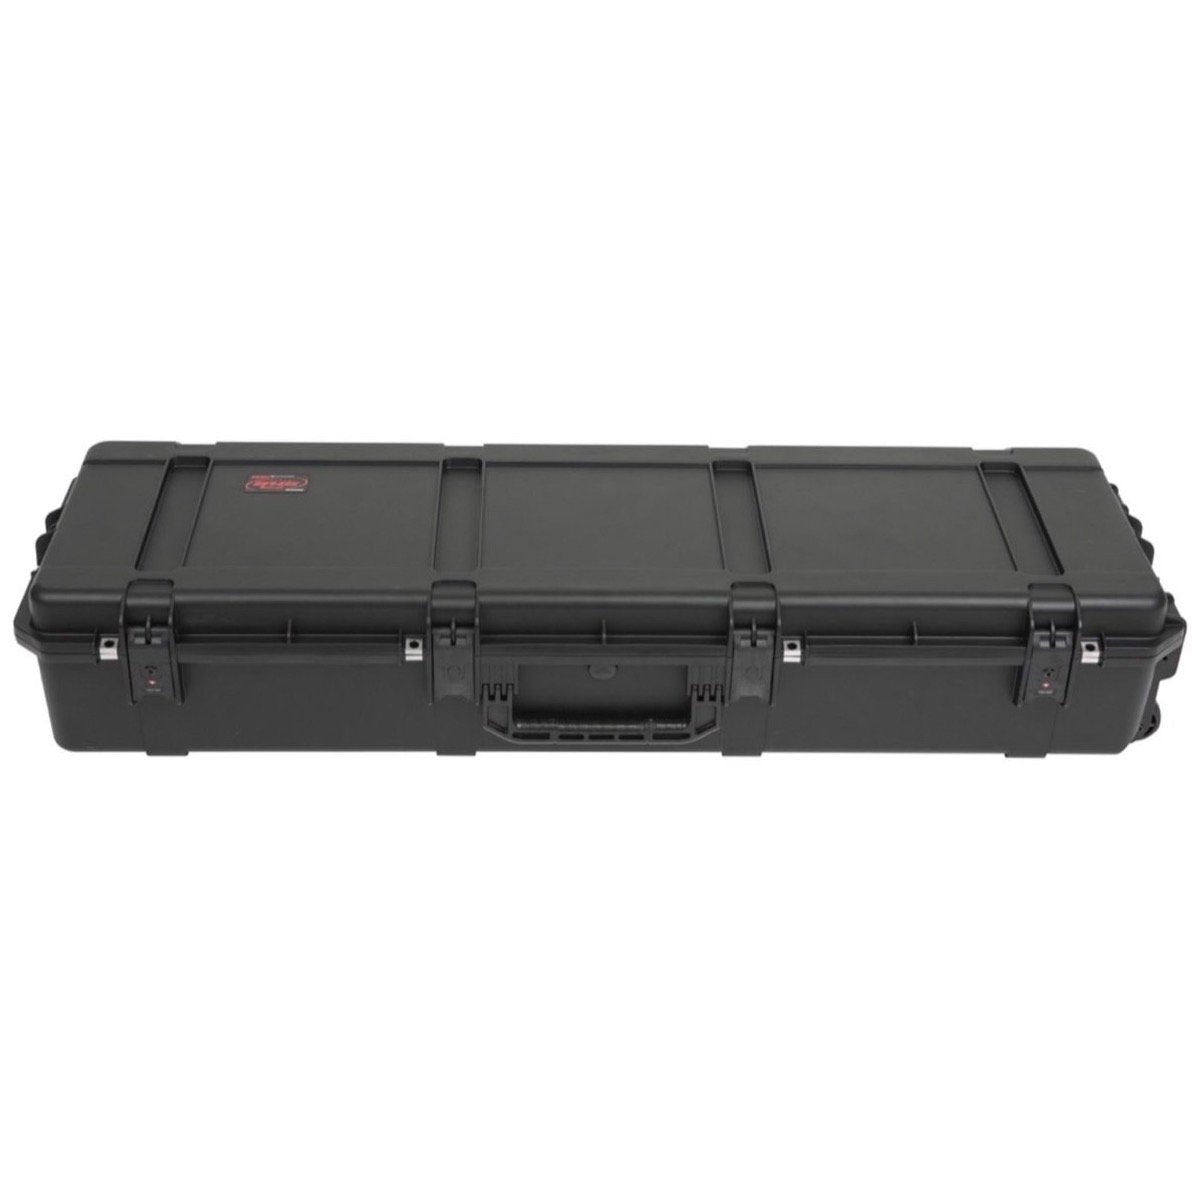 SKB 3i-5616-TKBD 88-Key Narrow Keyboard Case